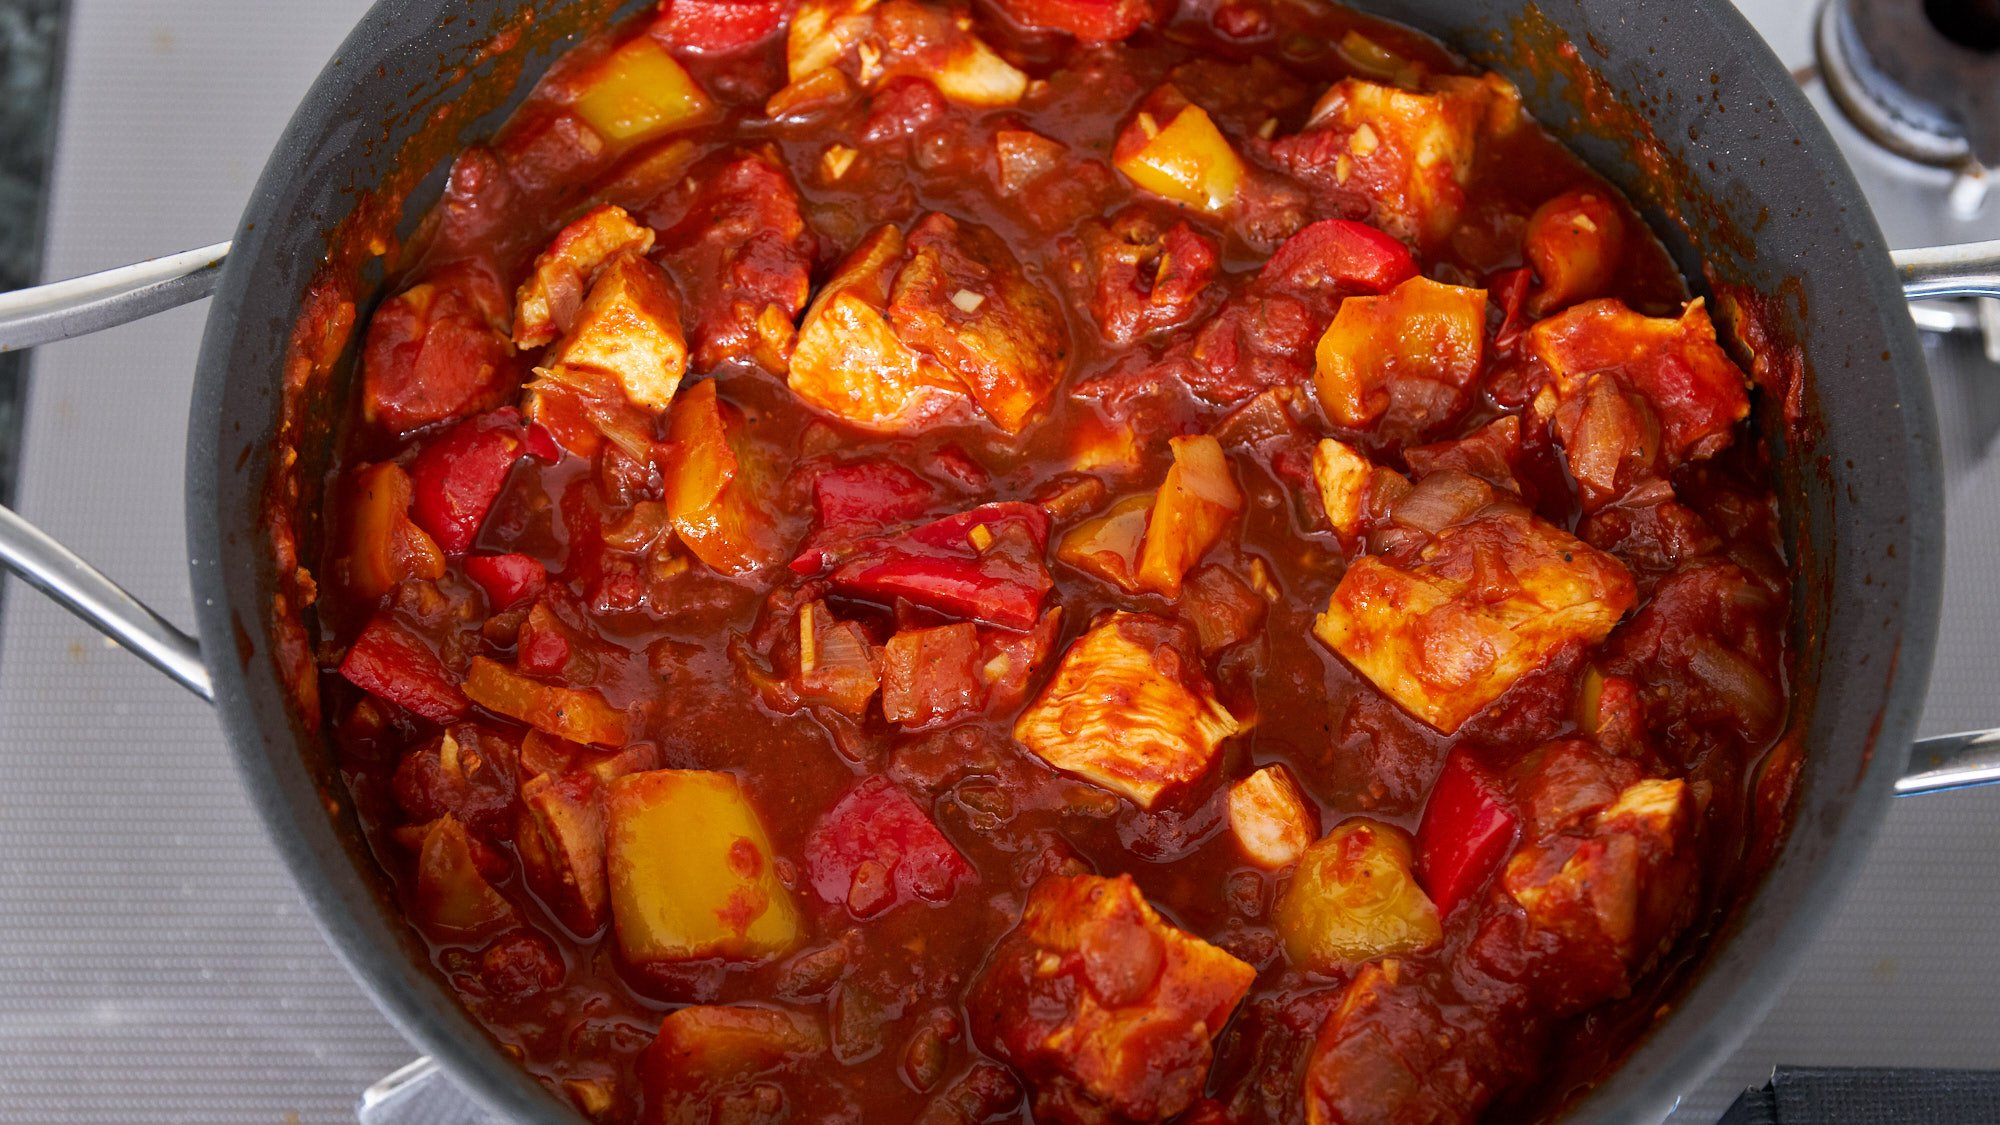 The chicken is returned to the pot with the chili and simmered until the chicken is cooked through.